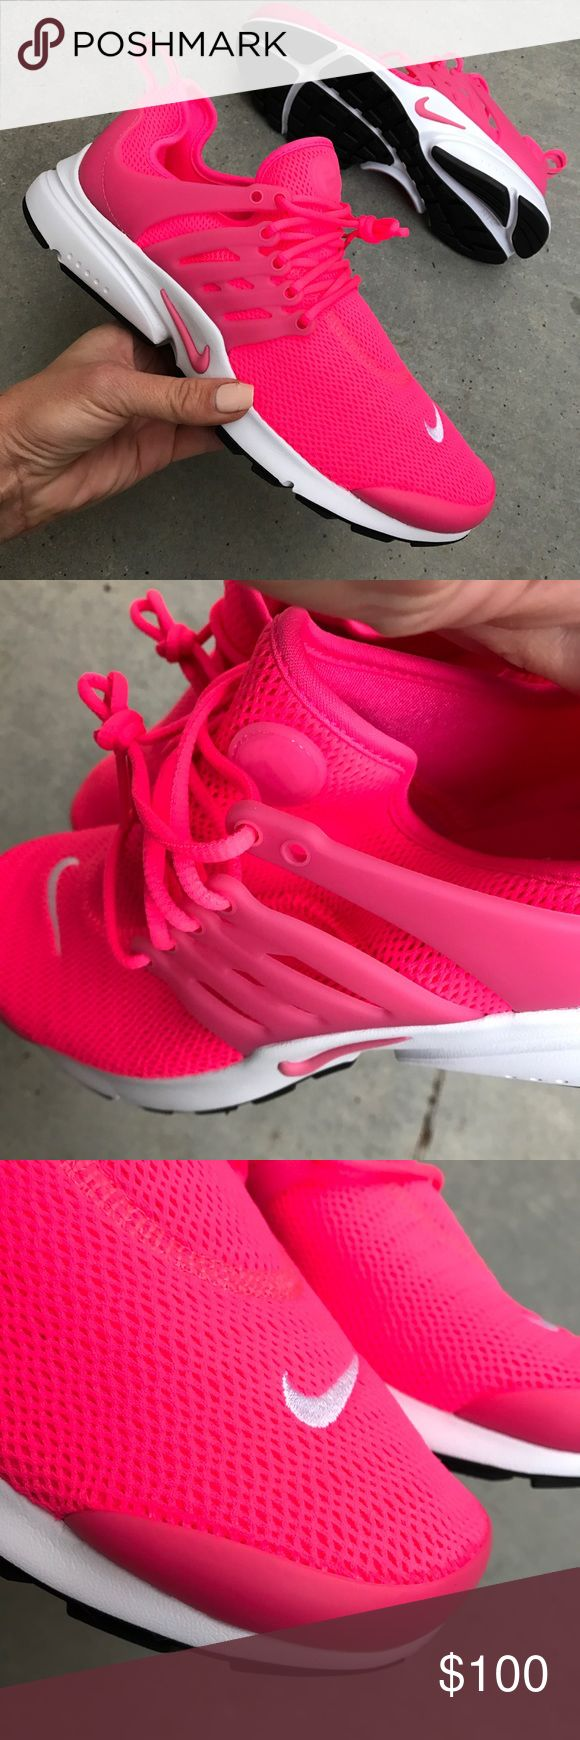 NWOB NIKE AIR PRESTOS SIZE 10 women's New never worn NIKE AIR PRESTO SIZE 10 women's. This shoe is beyond perfect for fashion AND function. THIS HOT PINK COLOR! Ships same or next day from smoke free home. No box. Will ship wrapped in tissue in a new, clean shipping box. Bundle items to save. PRICE IS FIRM Checkout all my NIKE listings. ⚡️100% authentic Nike product purchased directly from NIKE Nike Shoes Athletic Shoes